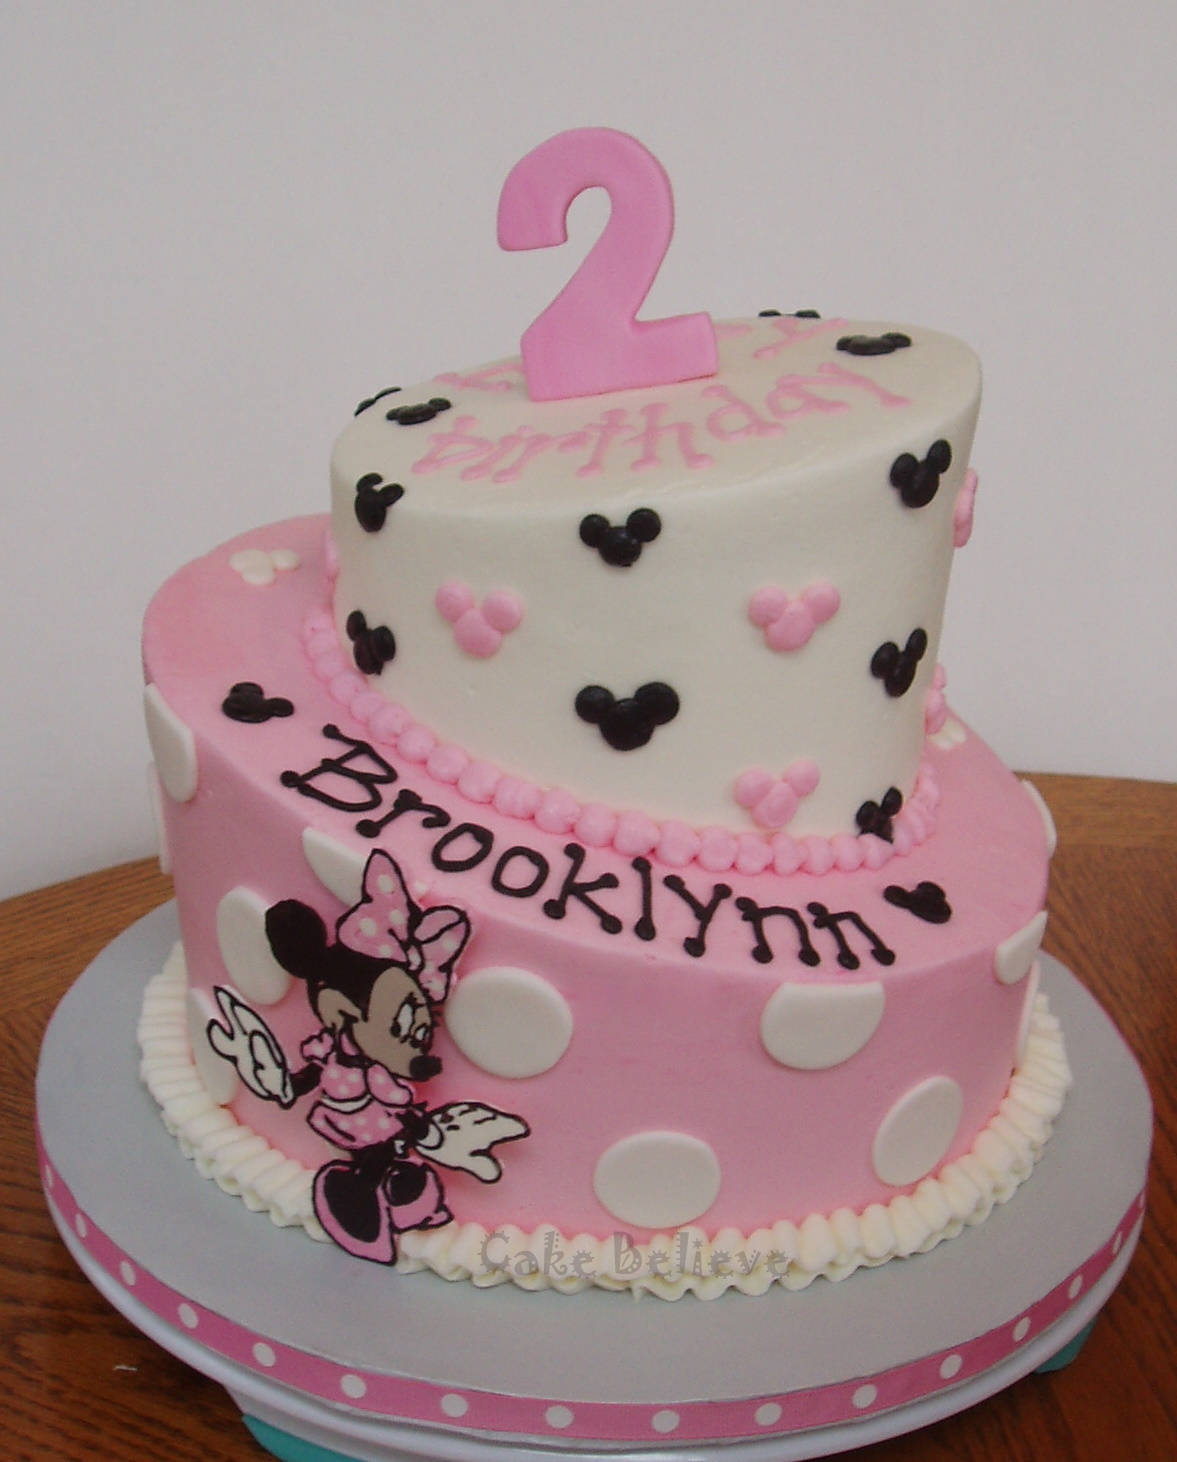 Birthday Cake With Minnie Mouse Decor Image Inspiration of Cake